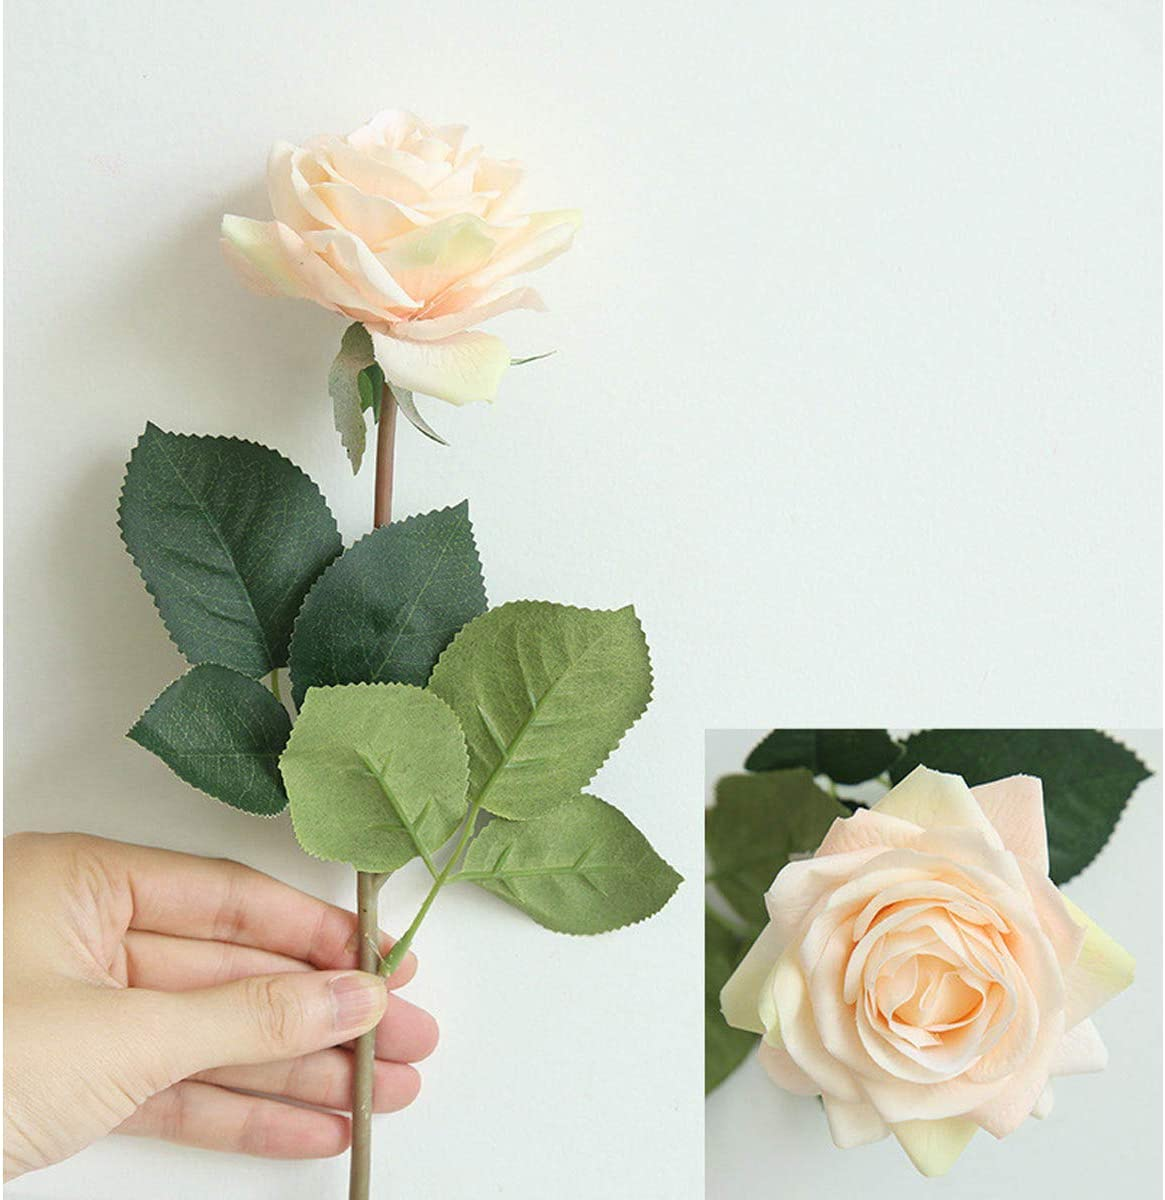 High Quaulity Latex Real Touch Rose Artificial Flower Bouquet for Wedding Holiday Bridal Bouquet Home Party Decor Bridesmaid (Champagne, 5)